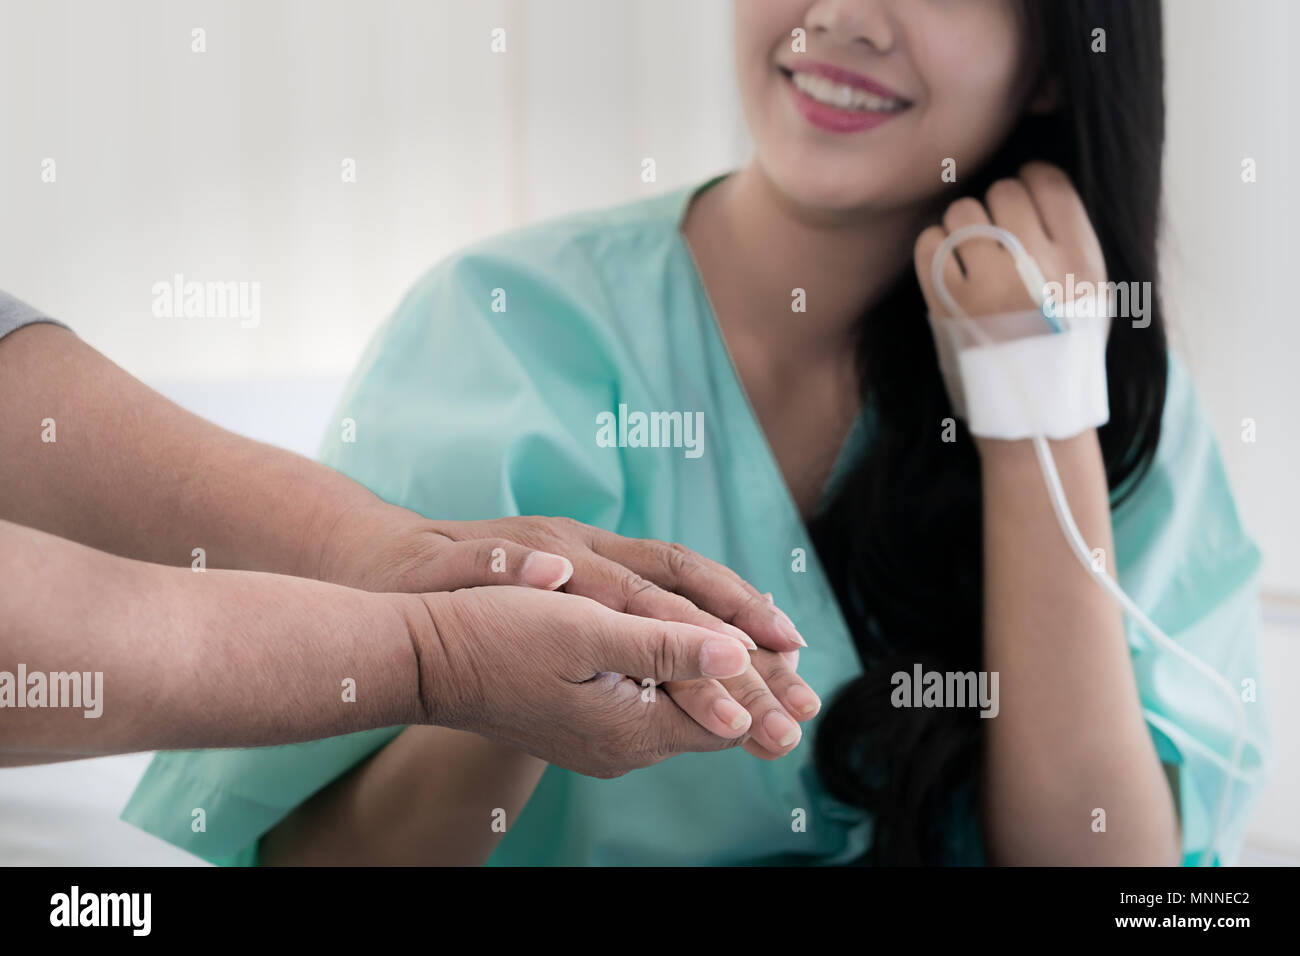 Mother hands holding her daughter patient hand sitting at the desk for encouragement, empathy, cheering and support while medical examination. Good ne - Stock Image